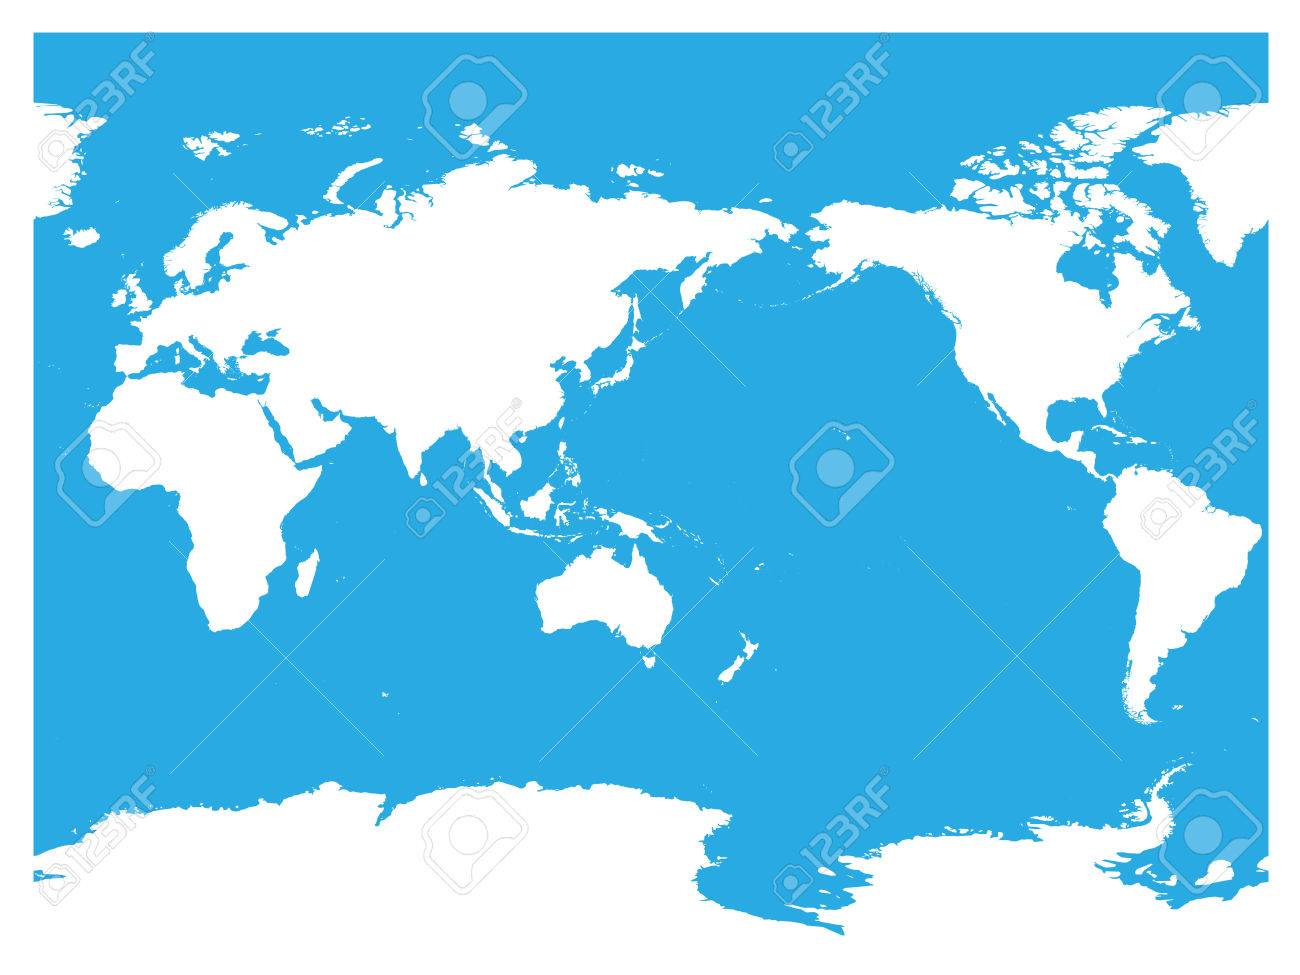 Australia And Pacific Ocean Centered World Map. High Detail White